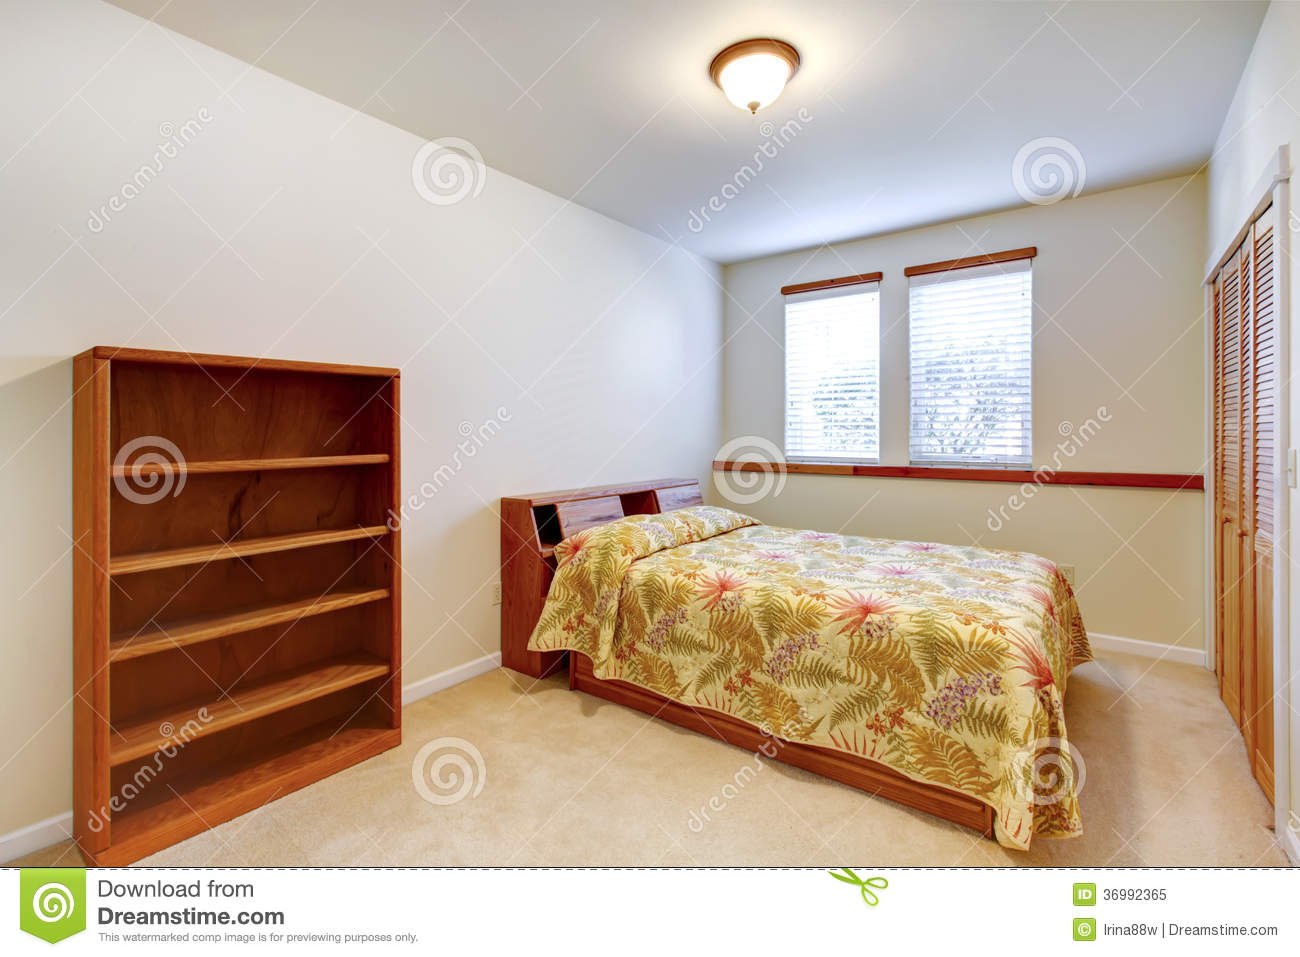 Warm Simple Bedroom With Wooden Furniture Royalty Free Stock Photo